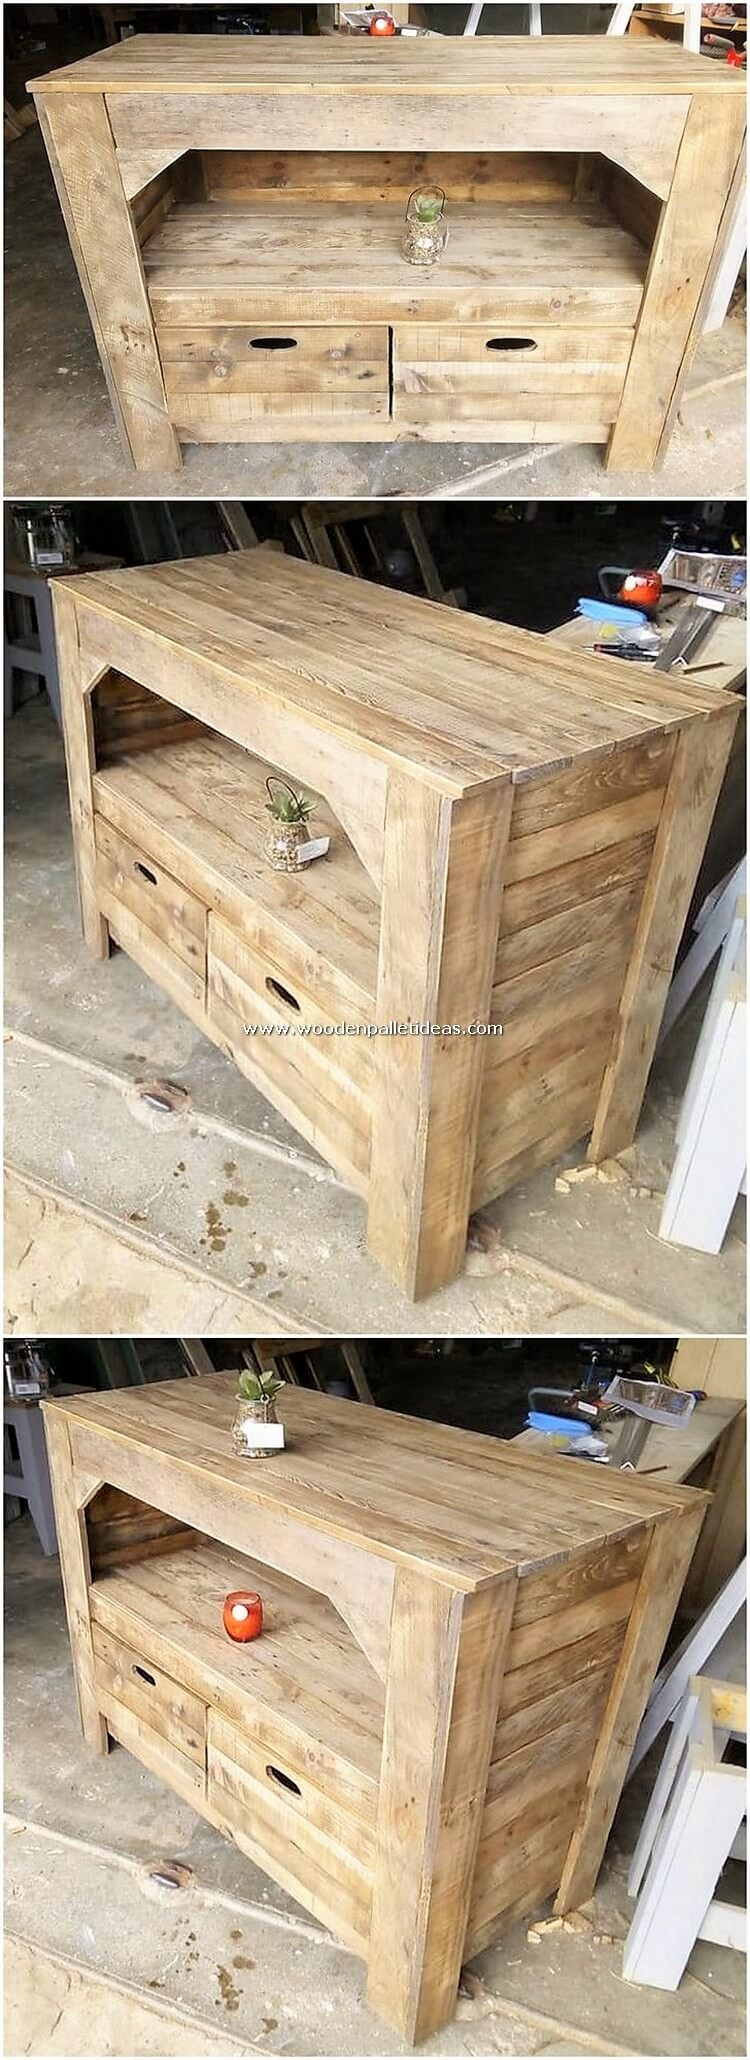 Recycled-Pallet-Cabinet